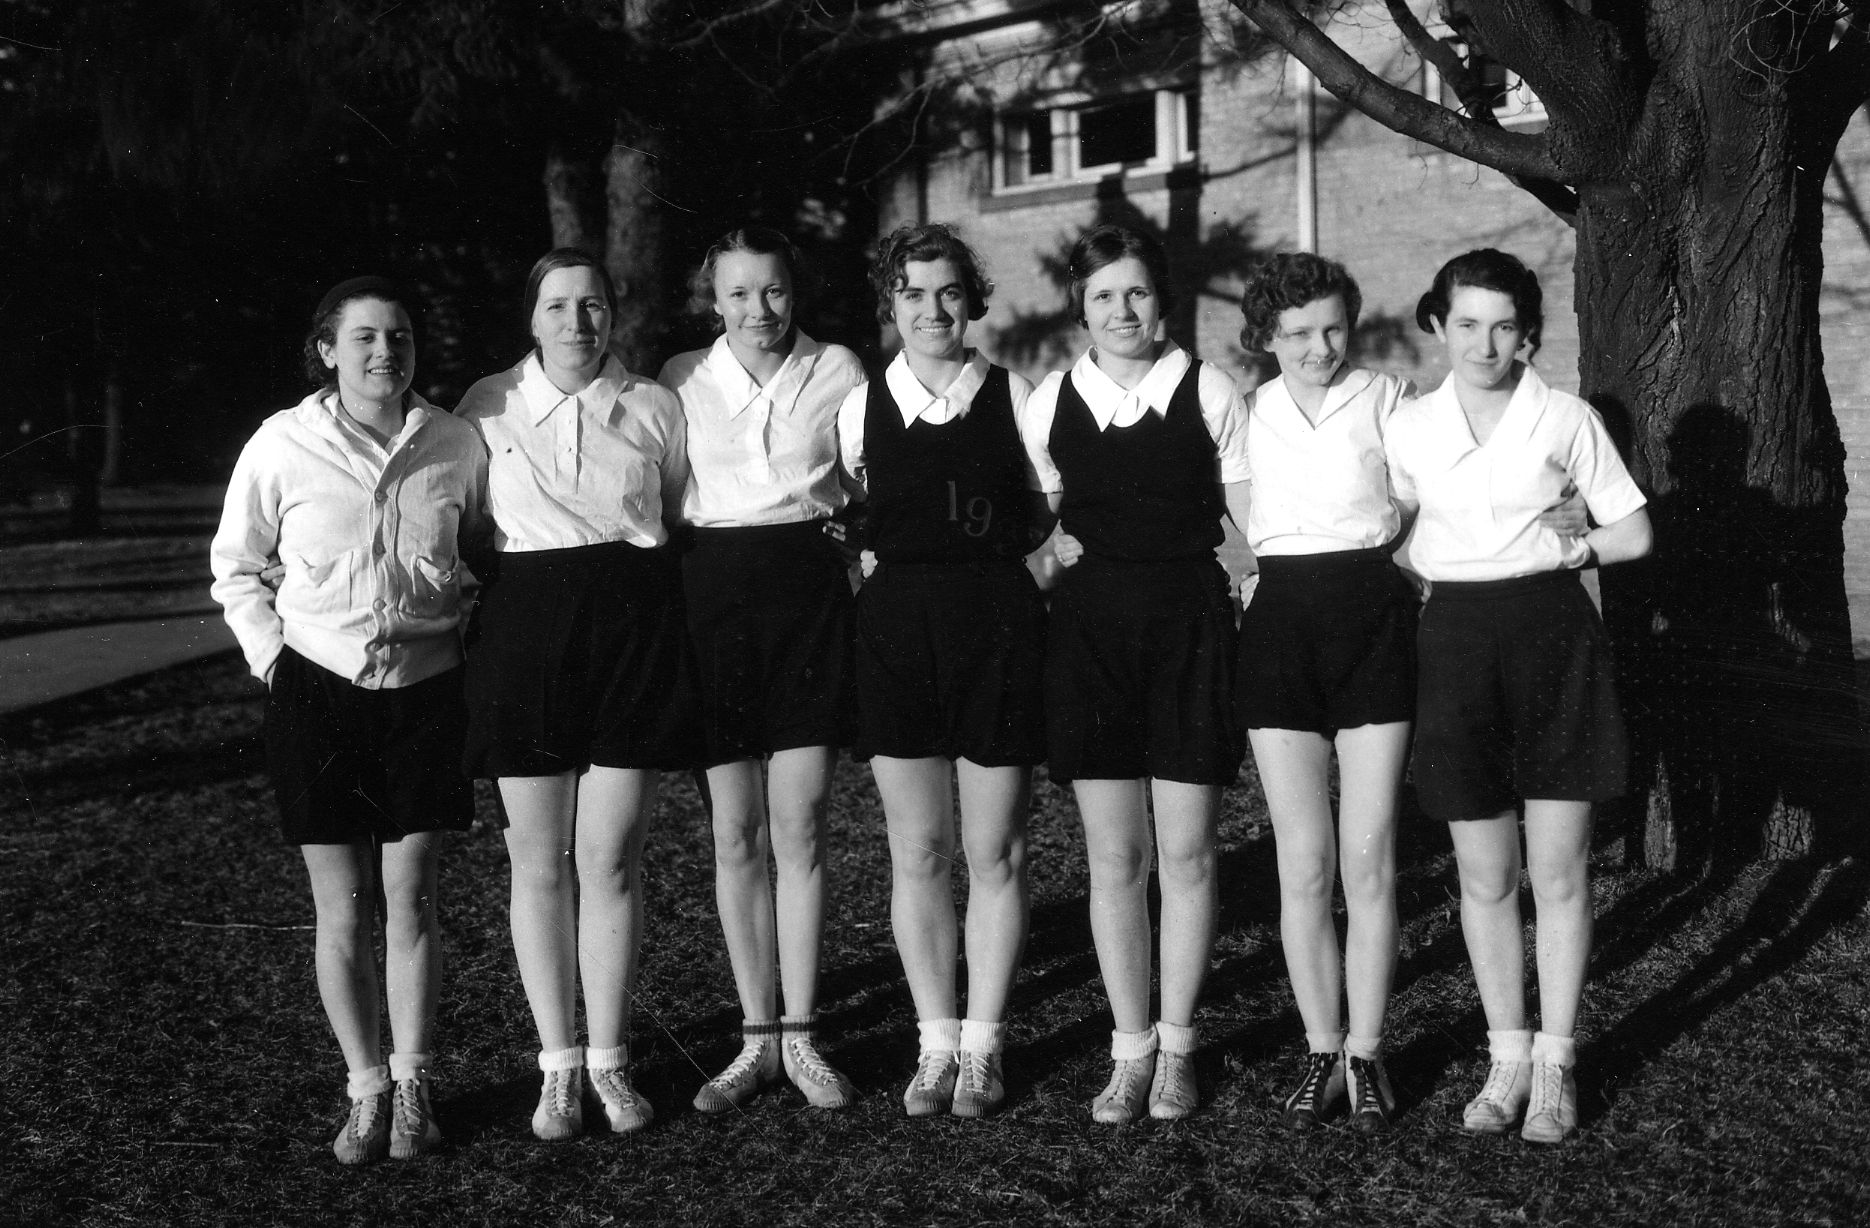 1930s Volleyball Team 1930s Volleyball Team Women Volleyball Volleyball